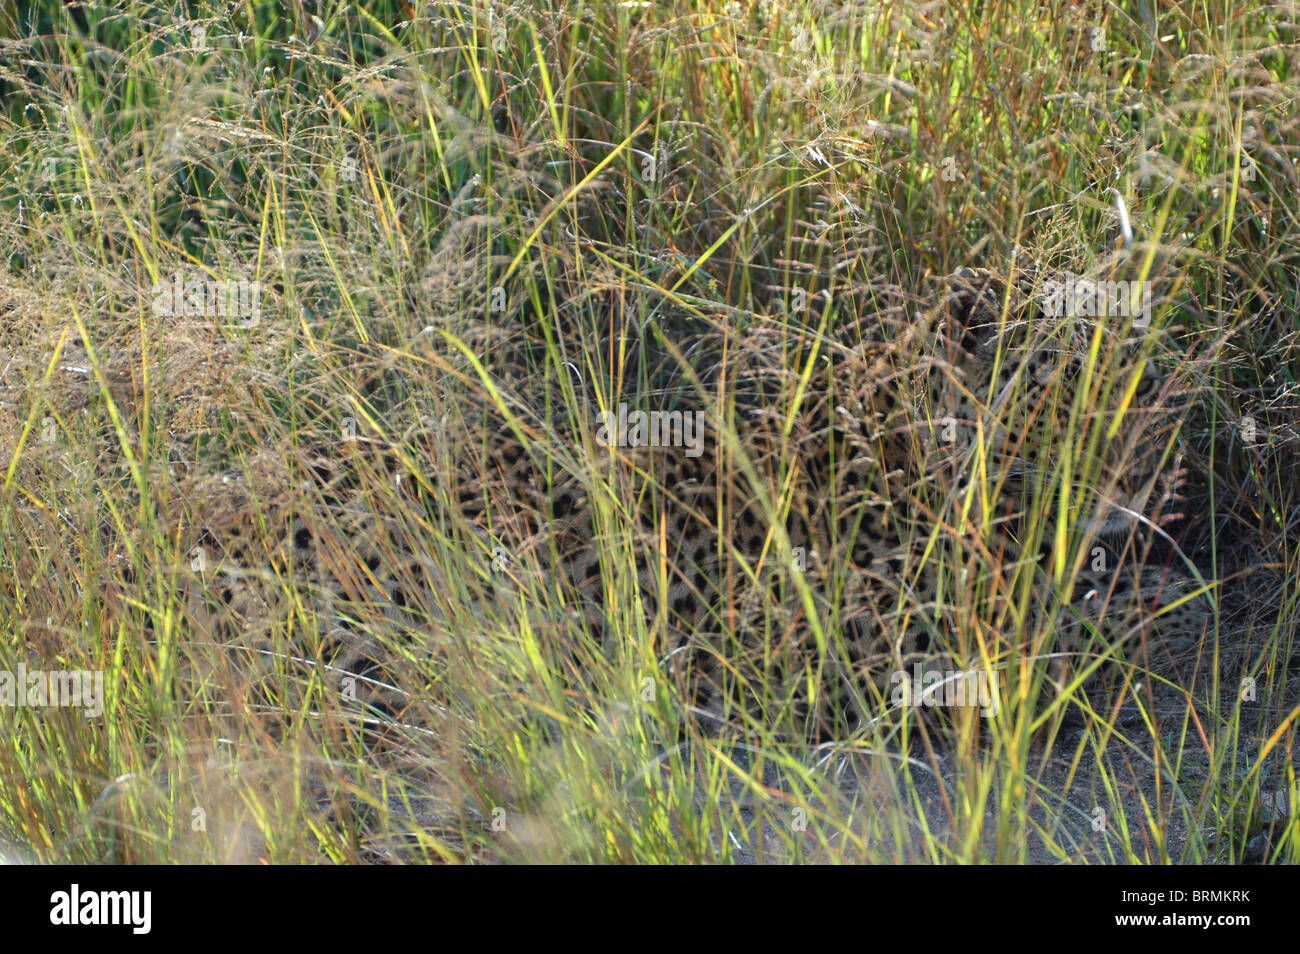 Leopard hiding in long grass - Stock Image